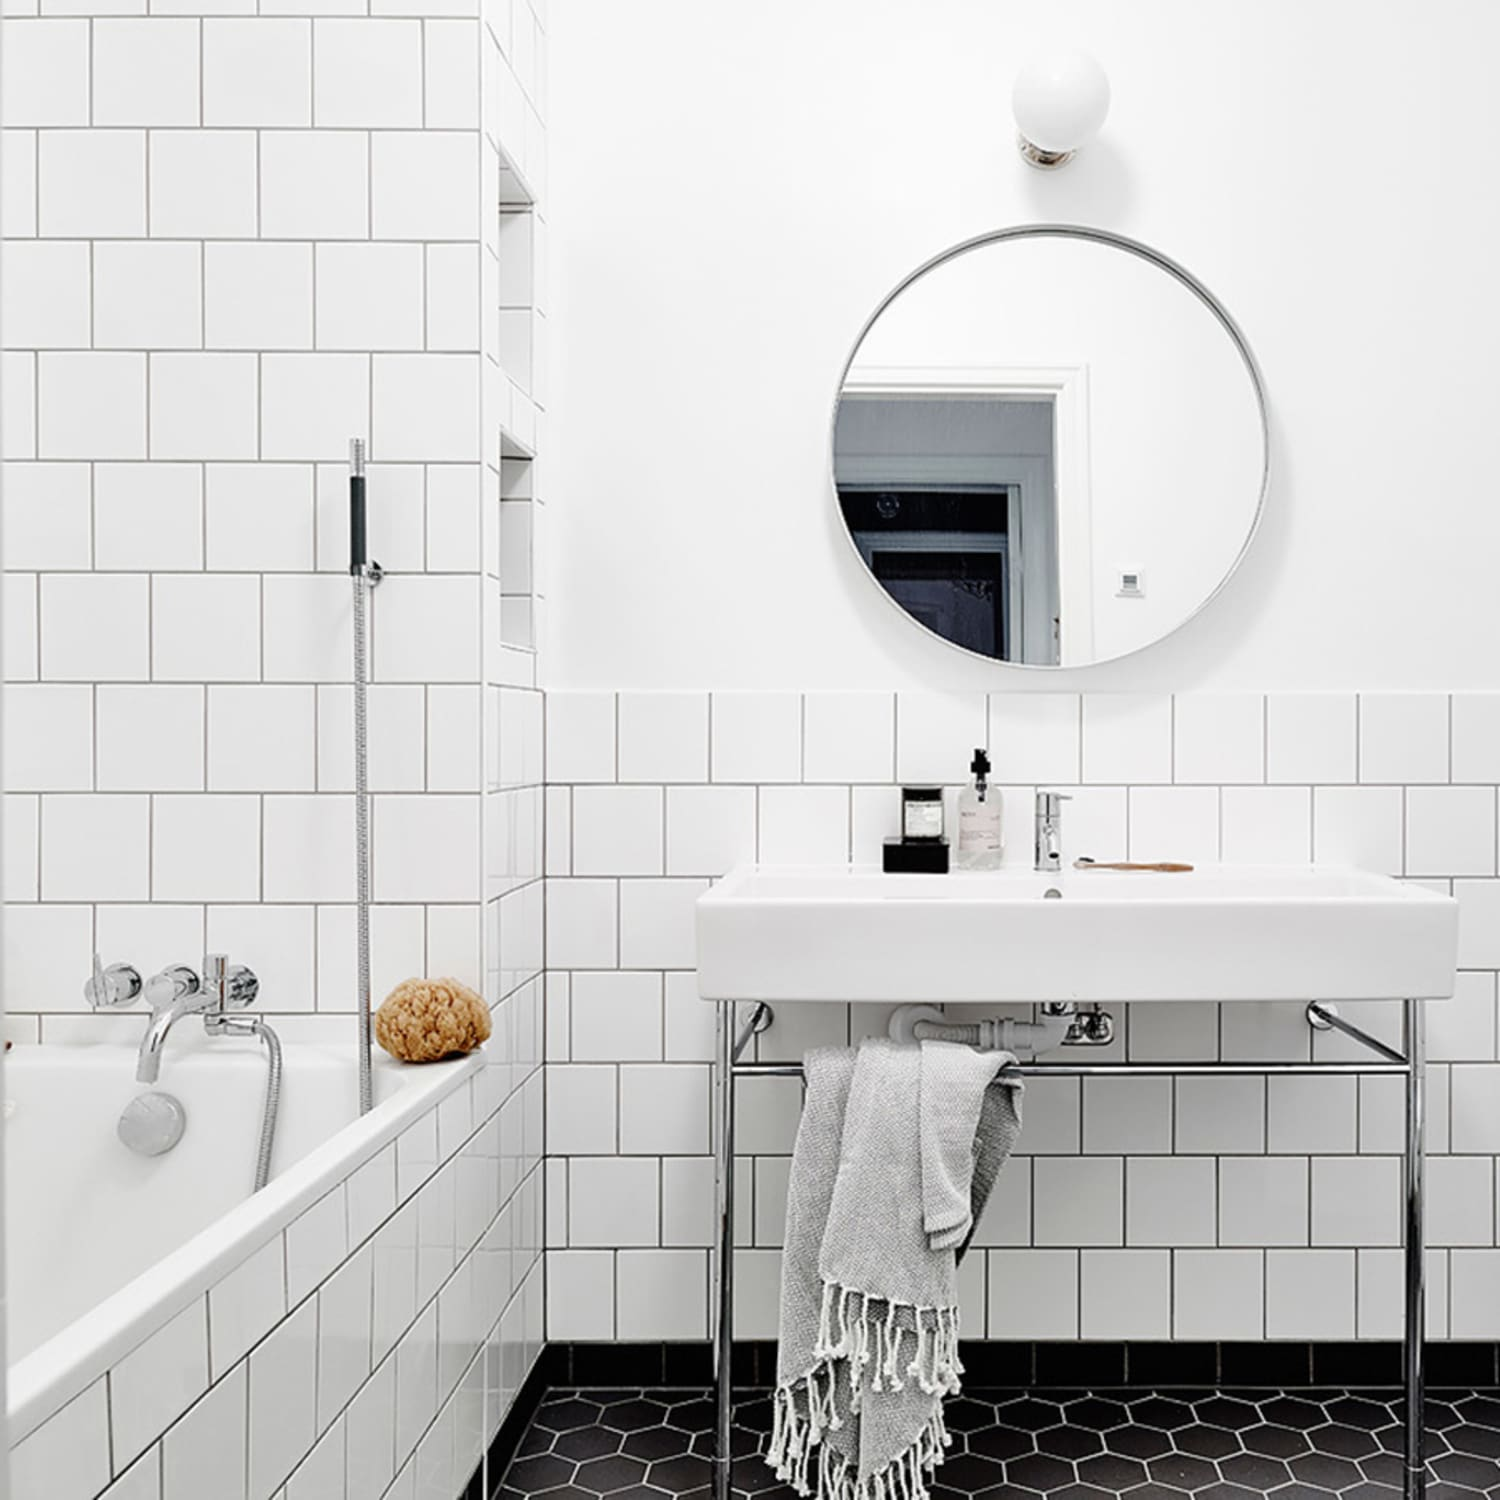 White Square Tiles: A Great Alternative to Subway Tile